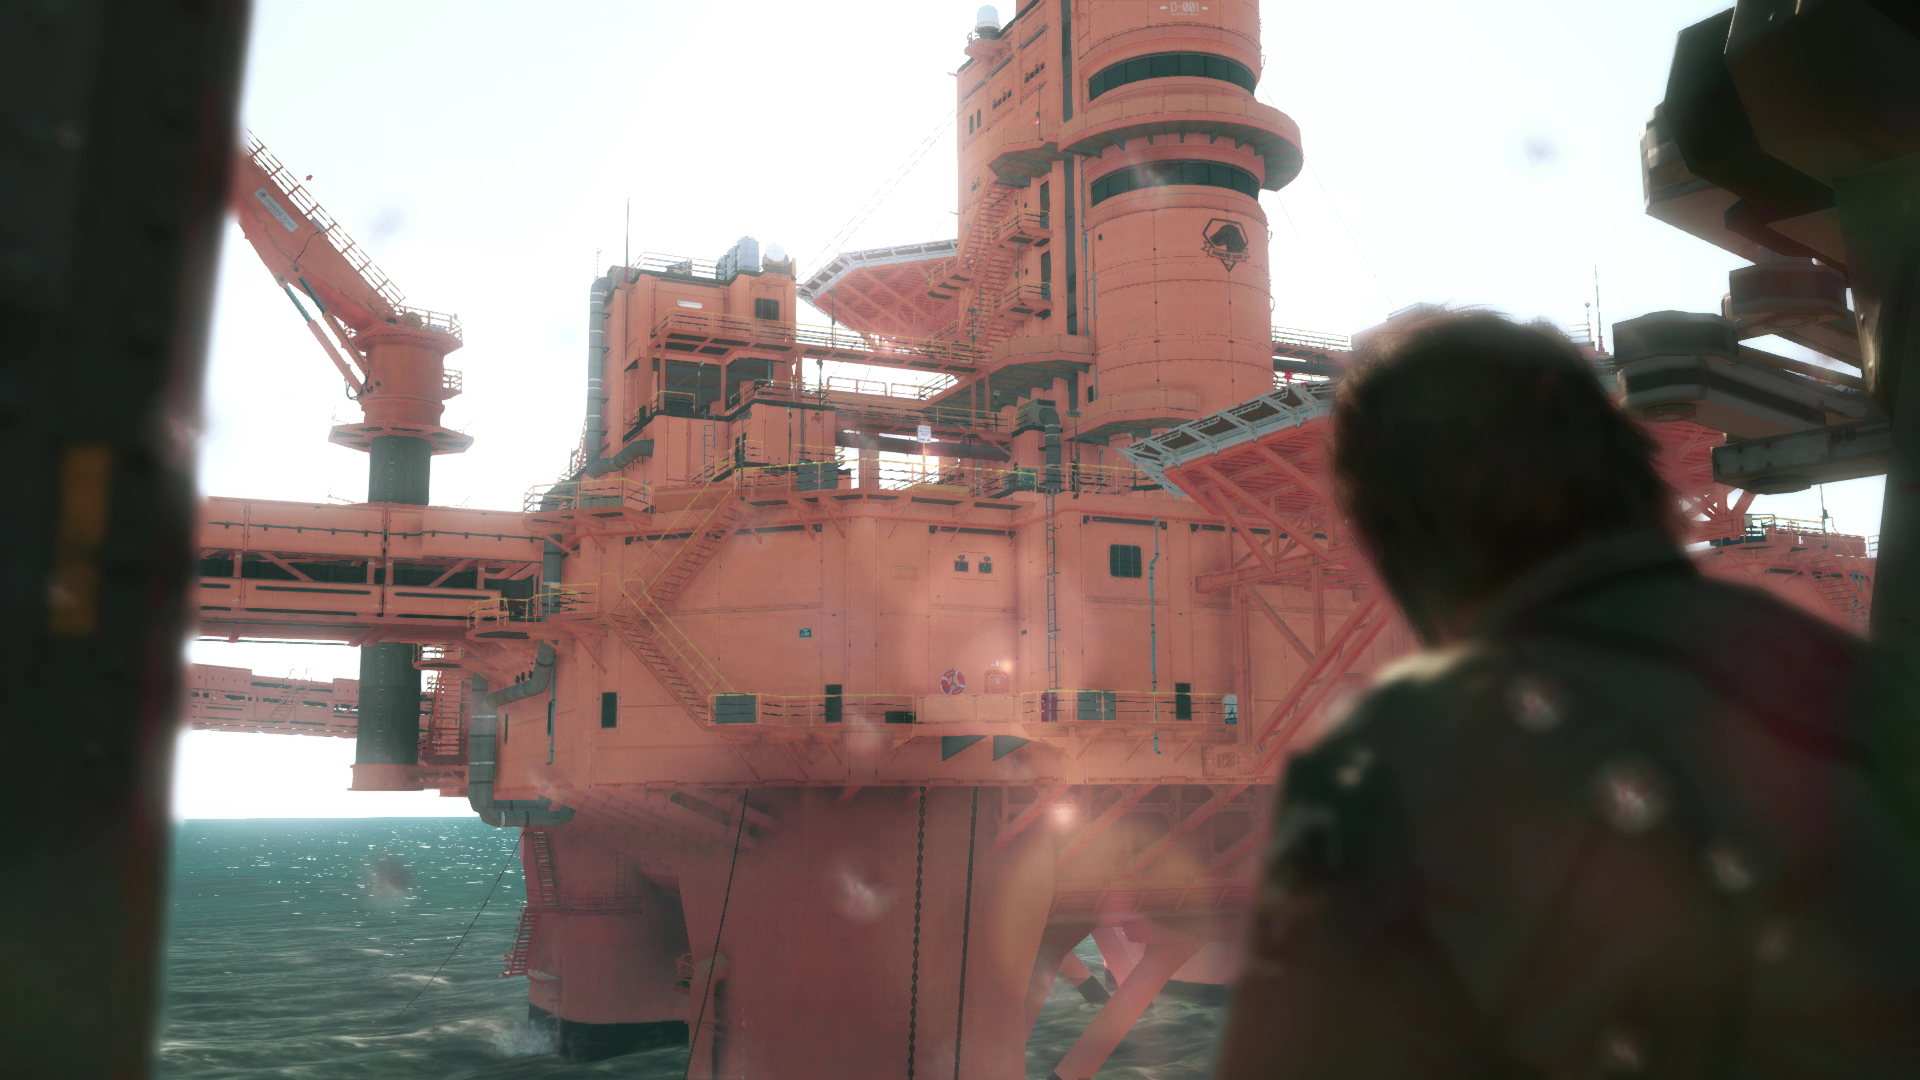 Review: Metal Gear Solid 5 is cliched, confused, and utterly